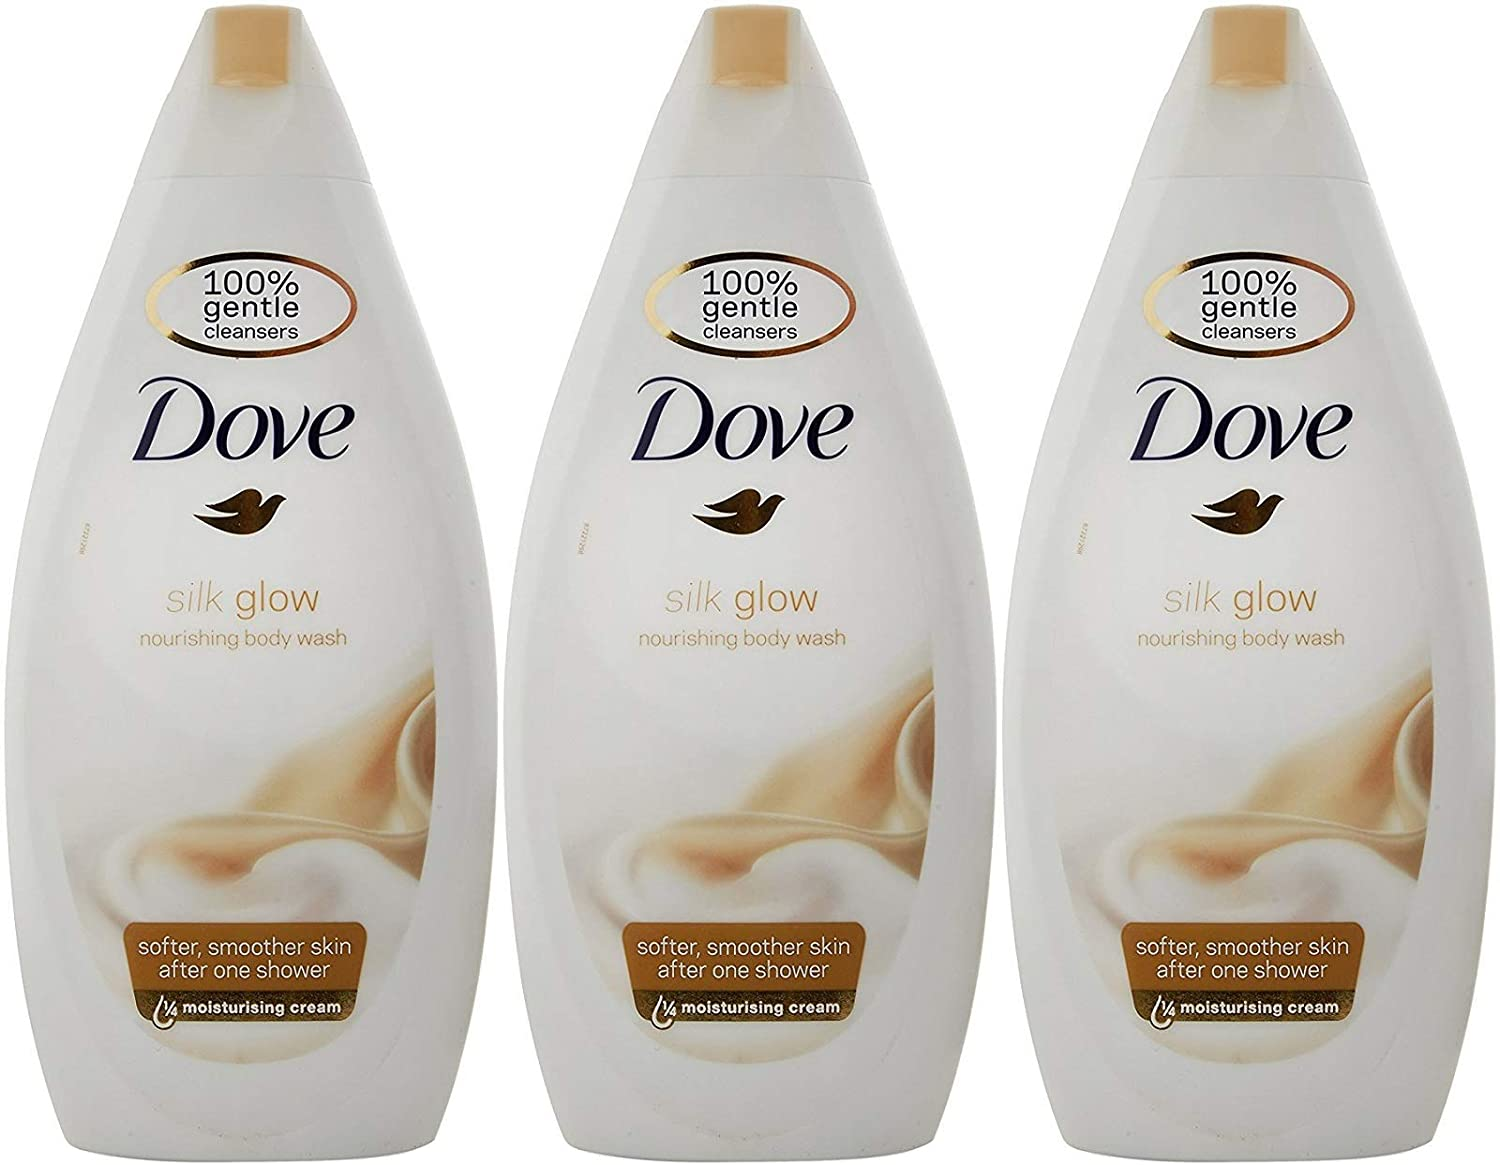 Dove Silk Glow Nourishing Body Wash, 16.9 Ounce / 500 Ml (Pack of 3)